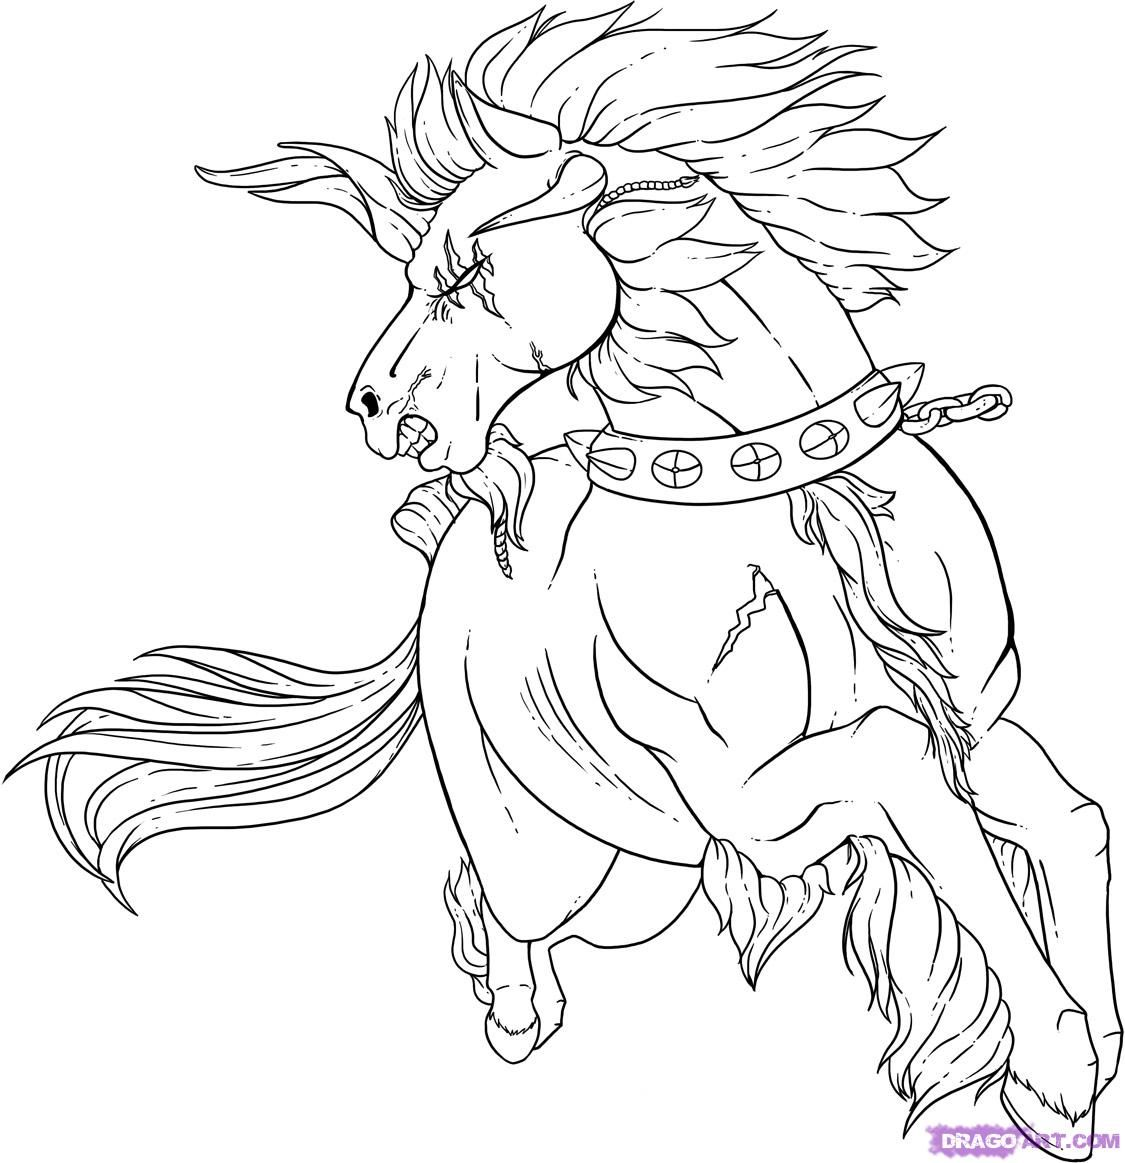 How To Draw A Horse Step By Step Step 6